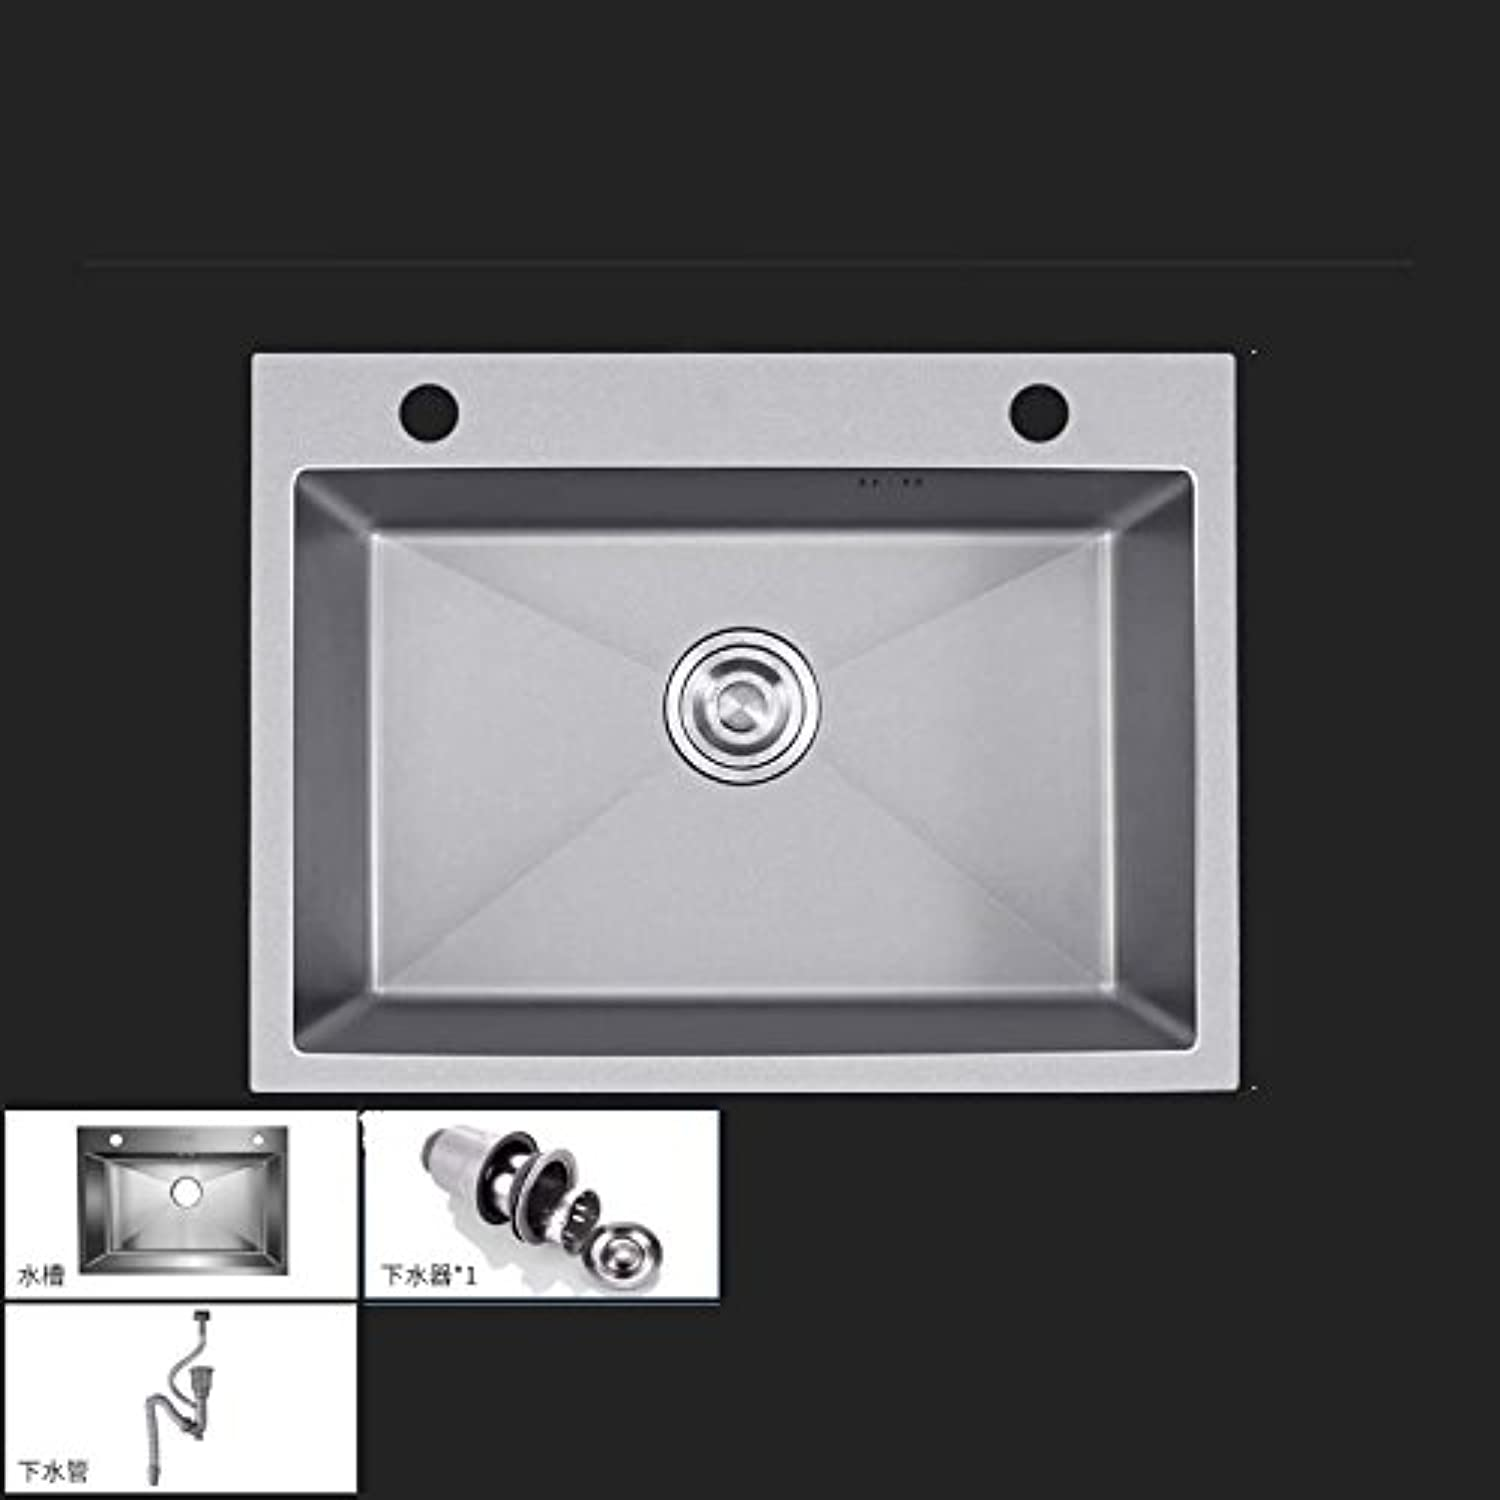 WINZSC 304 stainless steel manual sink single tank kitchen sink sink thickening sink package LU42710 (color   A)